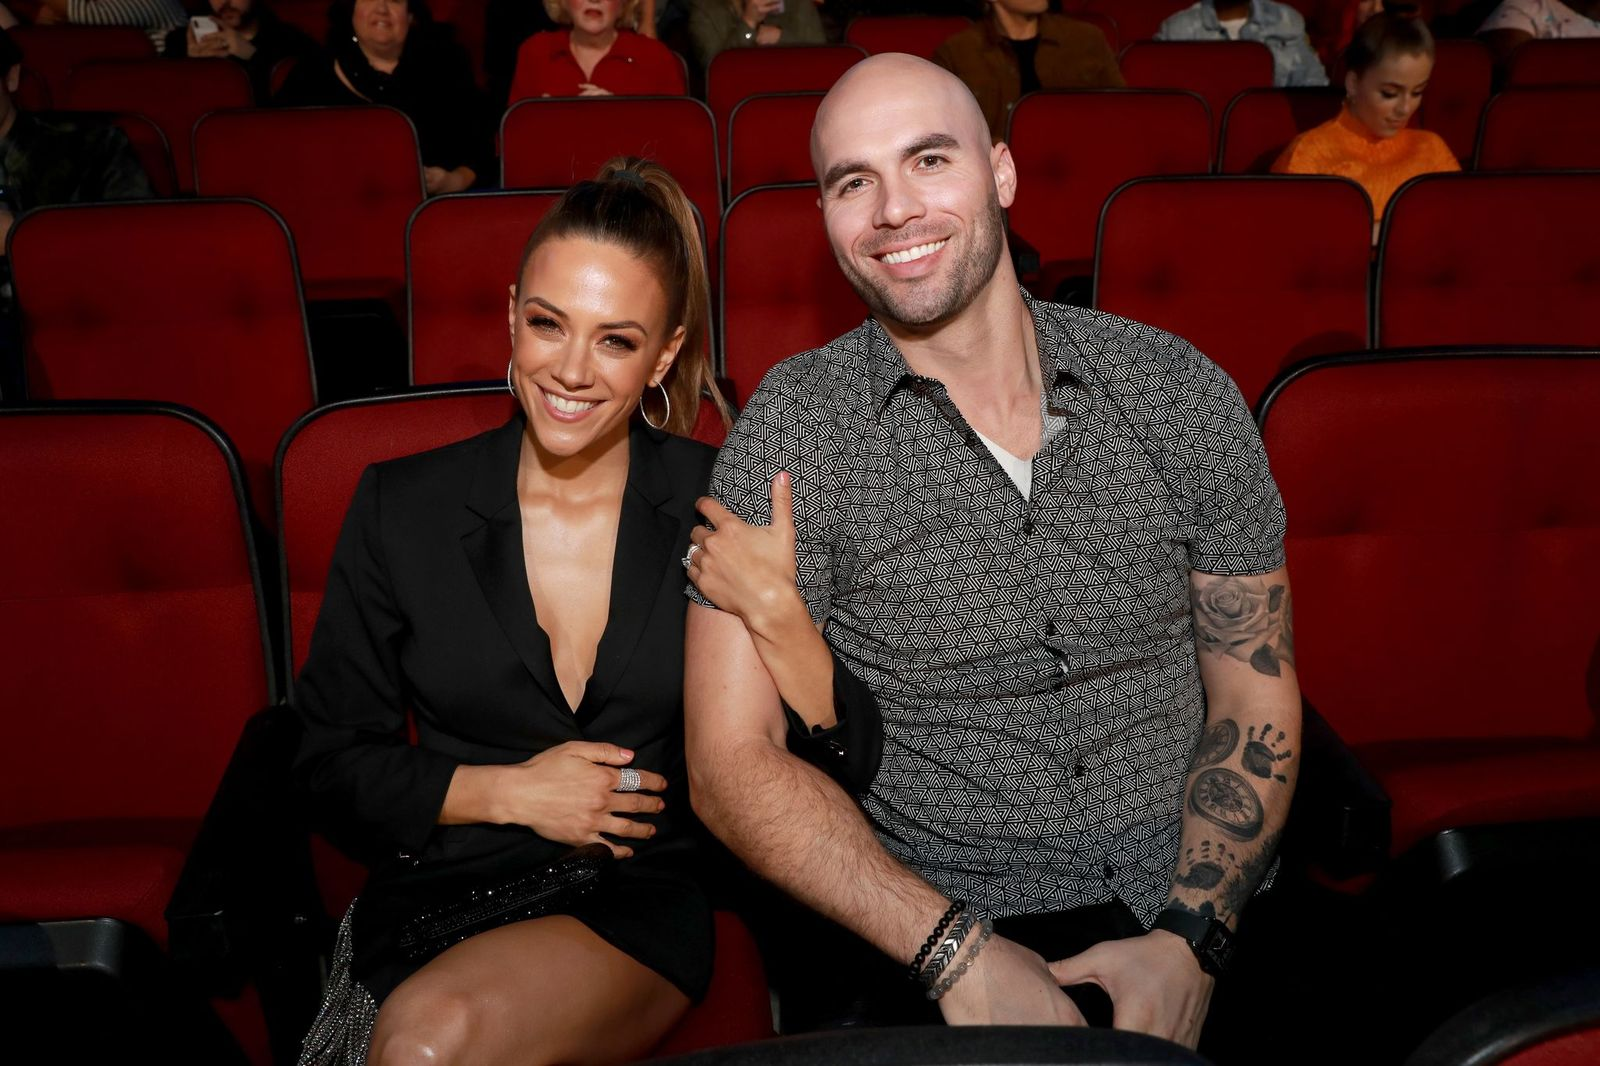 Jana Kramer and Mike Caussin attend the 2019 iHeartRadio Music Awards on March 14, 2019. | Getty Images